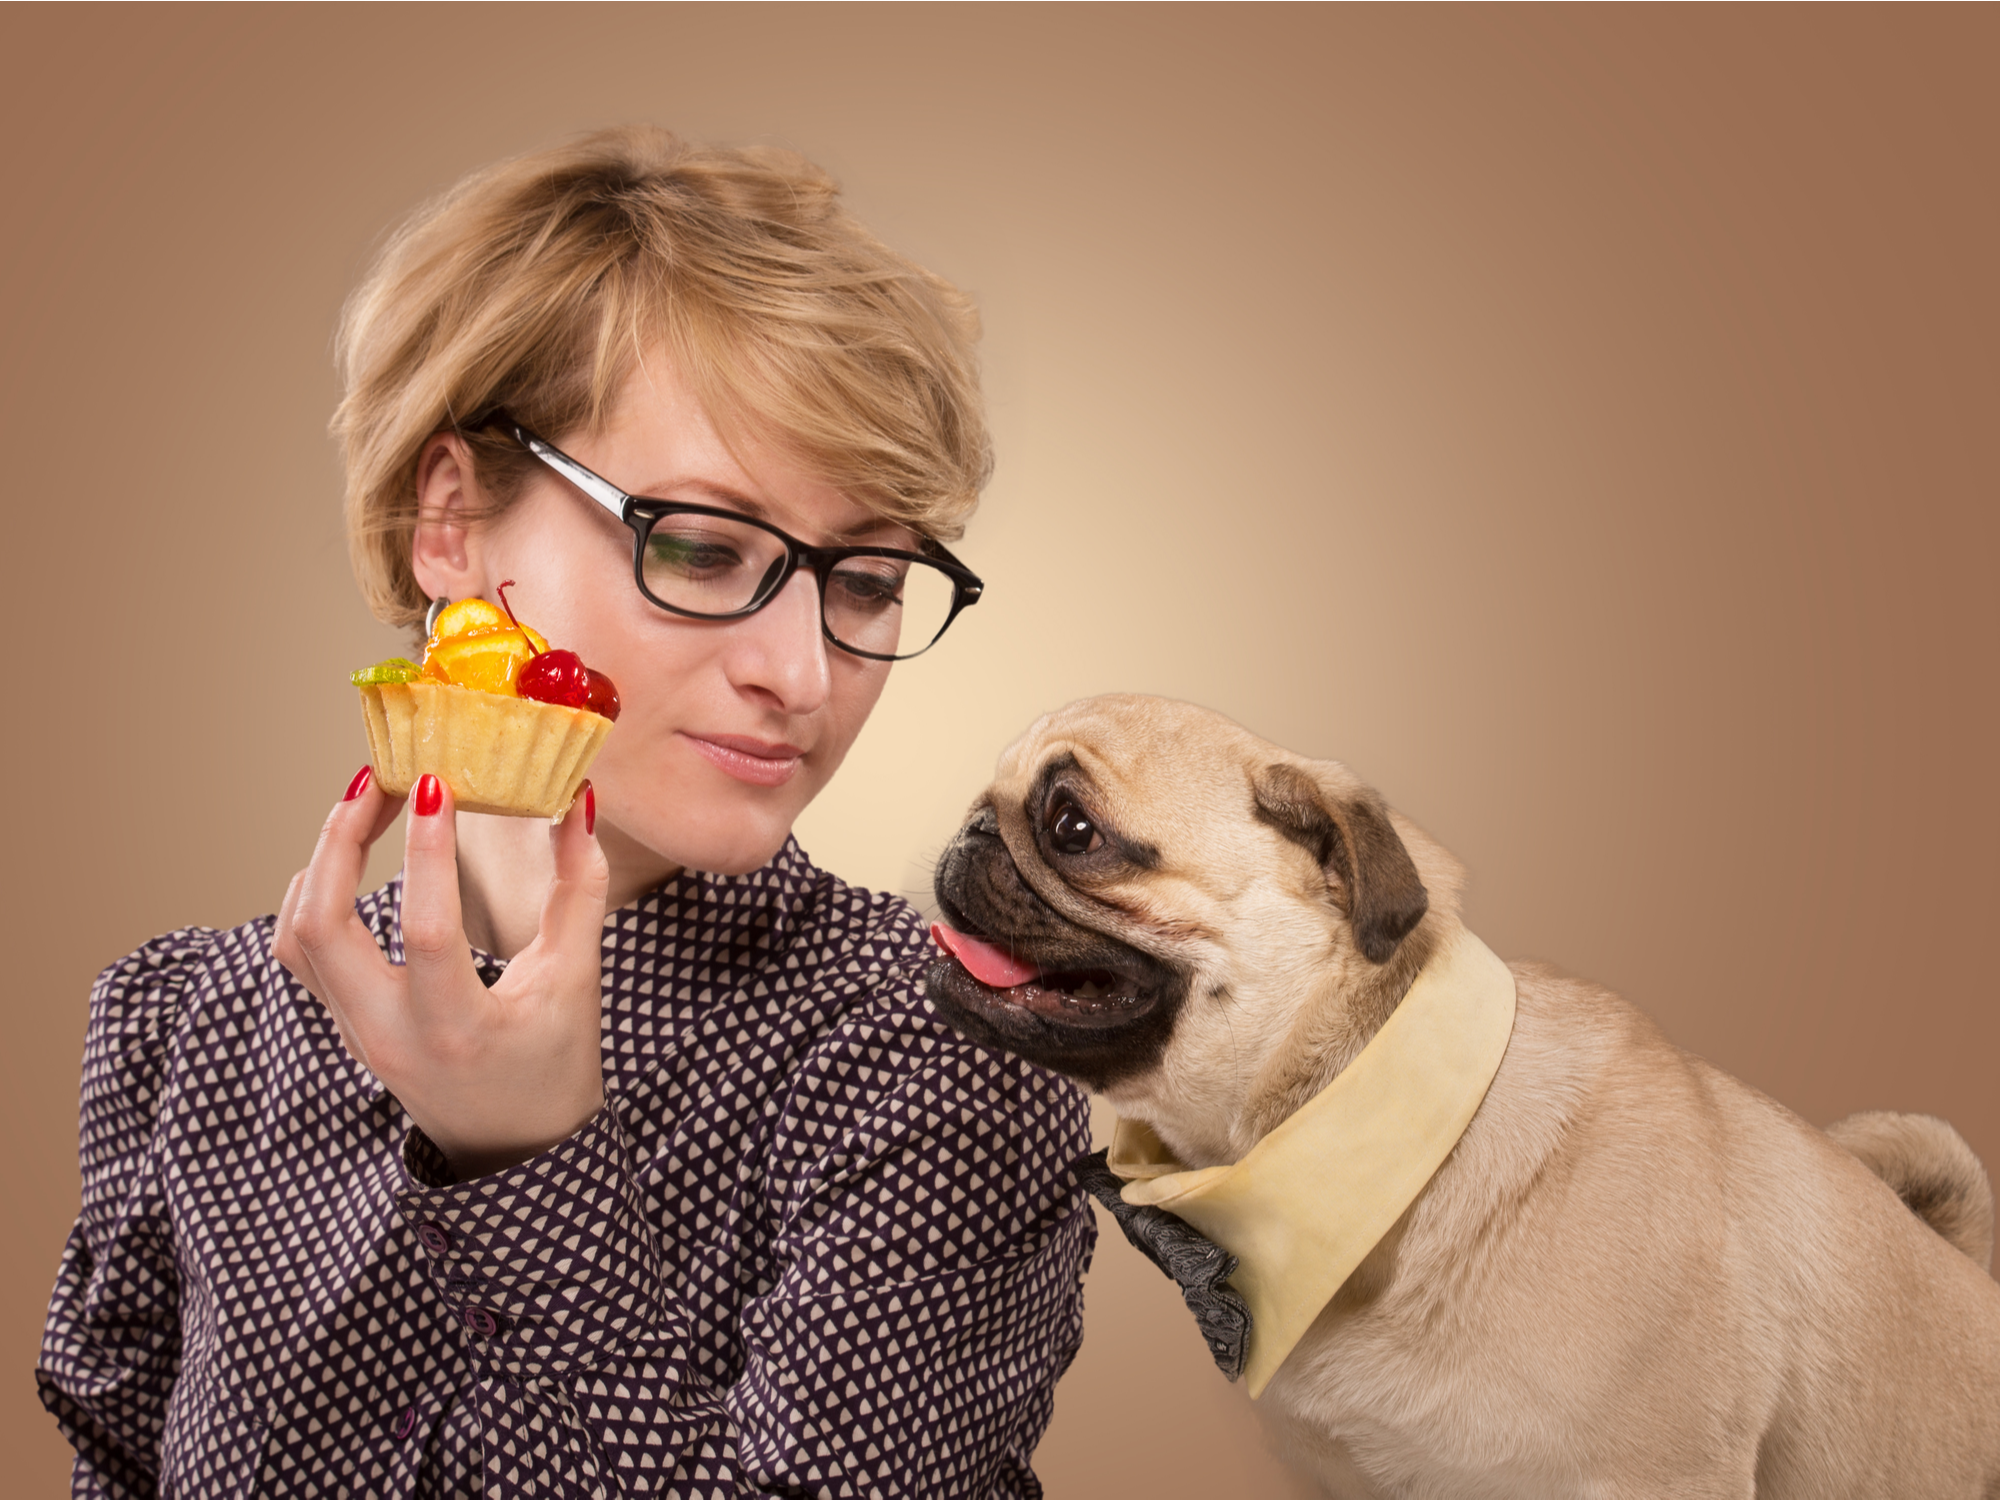 What people food should you not give your pet to avoid a pet emergency?